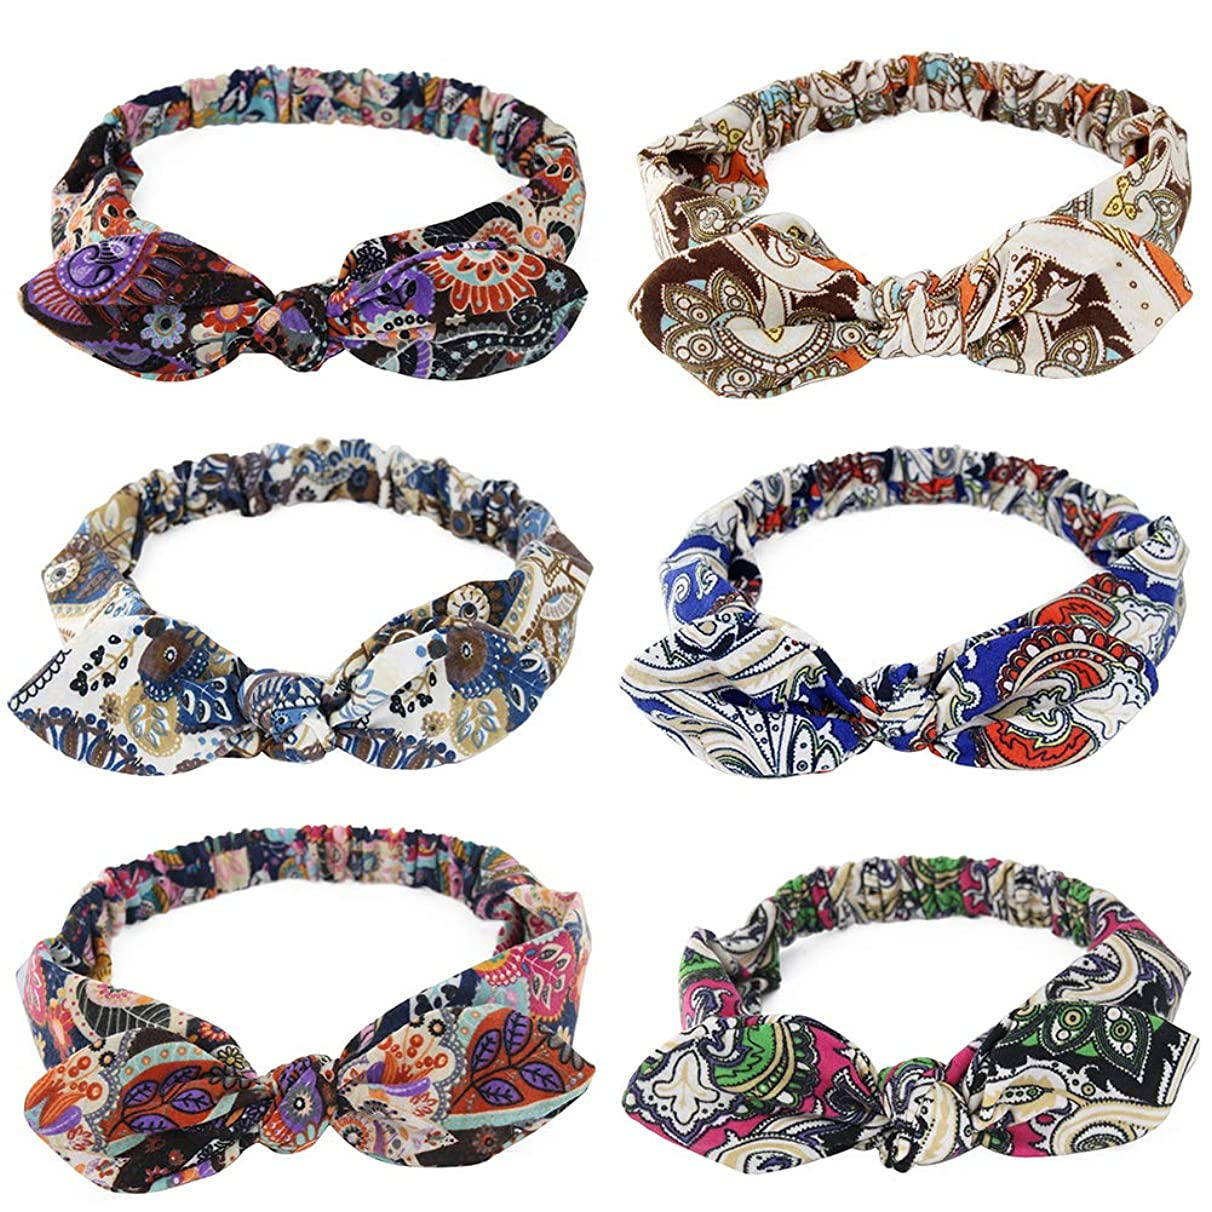 Carede Elastic Paisley Bandana Headband Bohemian Turban Head Wrap Sport Yoga Knot Headbands With Rabbit Ears Bow Hair Band and Accessories for Girls and Women,Pack of 6